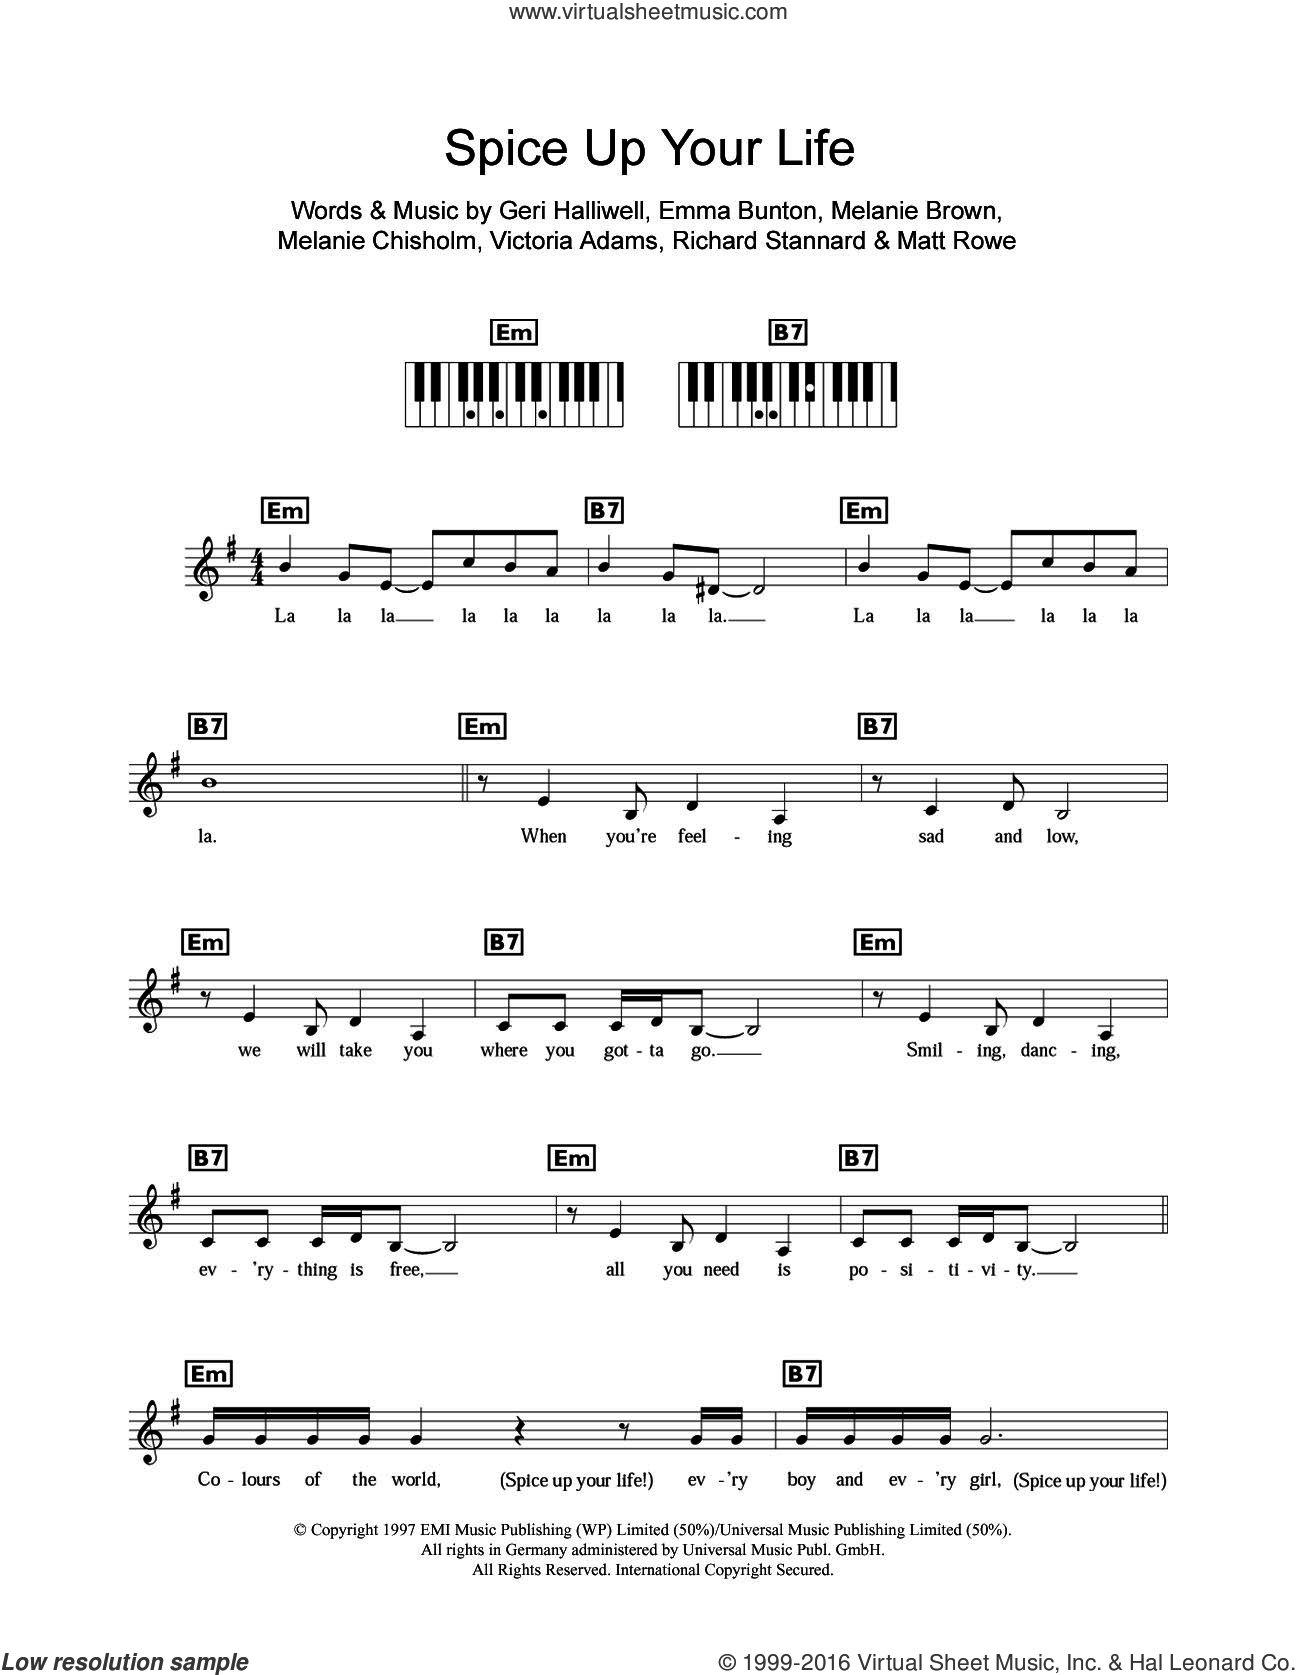 Spice Up Your Life sheet music for piano solo (chords, lyrics, melody) by Spice Girls, Chisholm Melanie, Emma Bunton, Geri Halliwell, Matt Rowe, Melanie Brown, Richard Stannard and Victoria Adams, intermediate piano (chords, lyrics, melody)